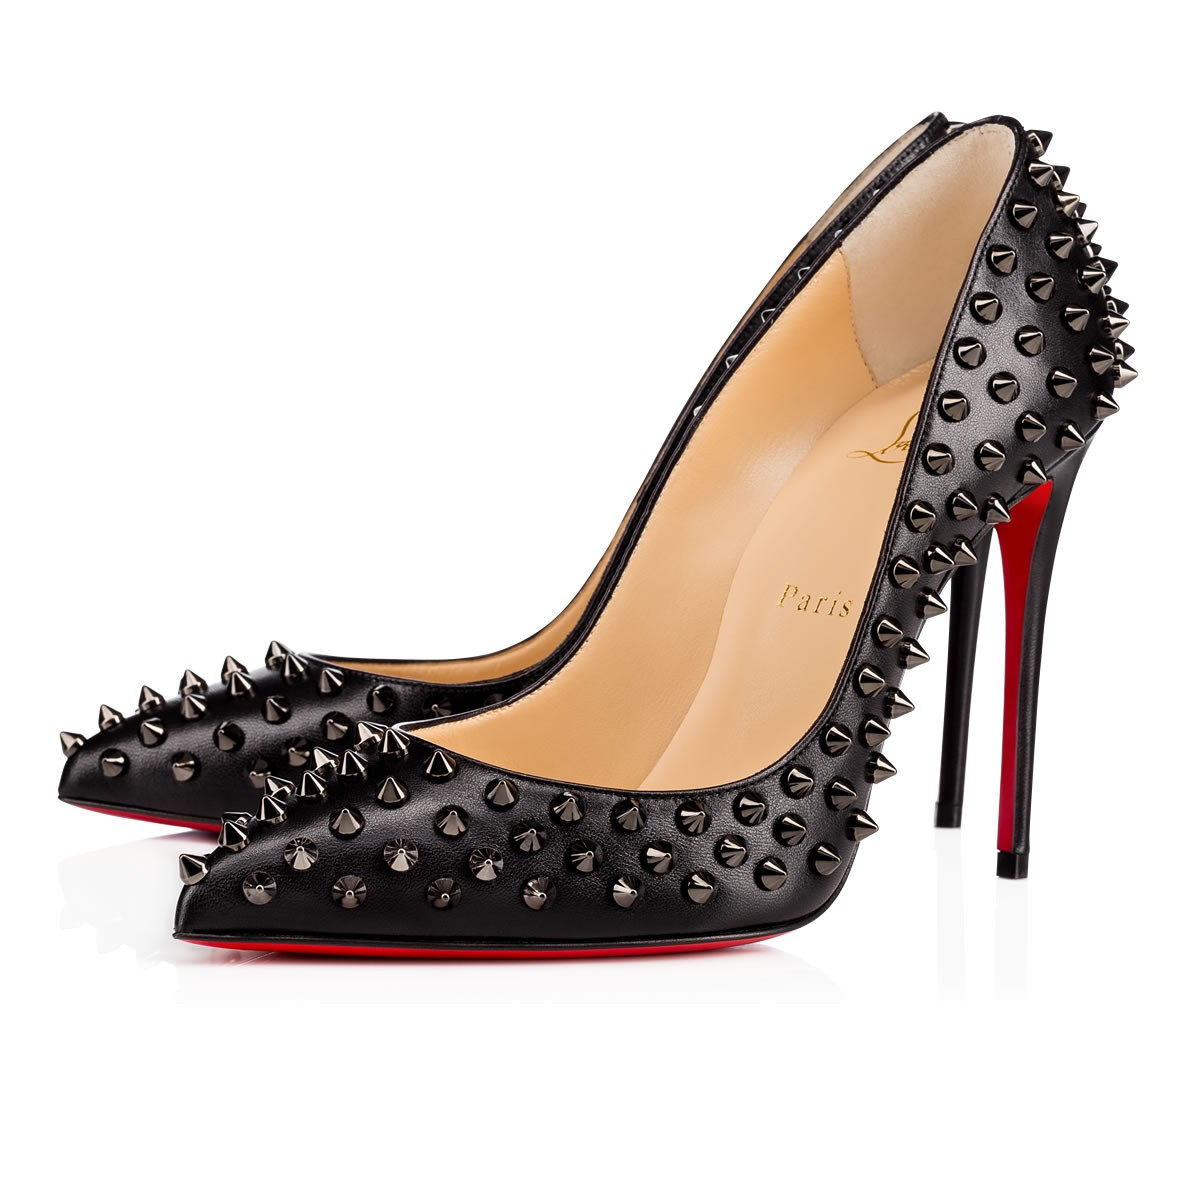 size 40 60da6 9fb91 Price of Christian Louboutin Heels in South Africa | Luxity